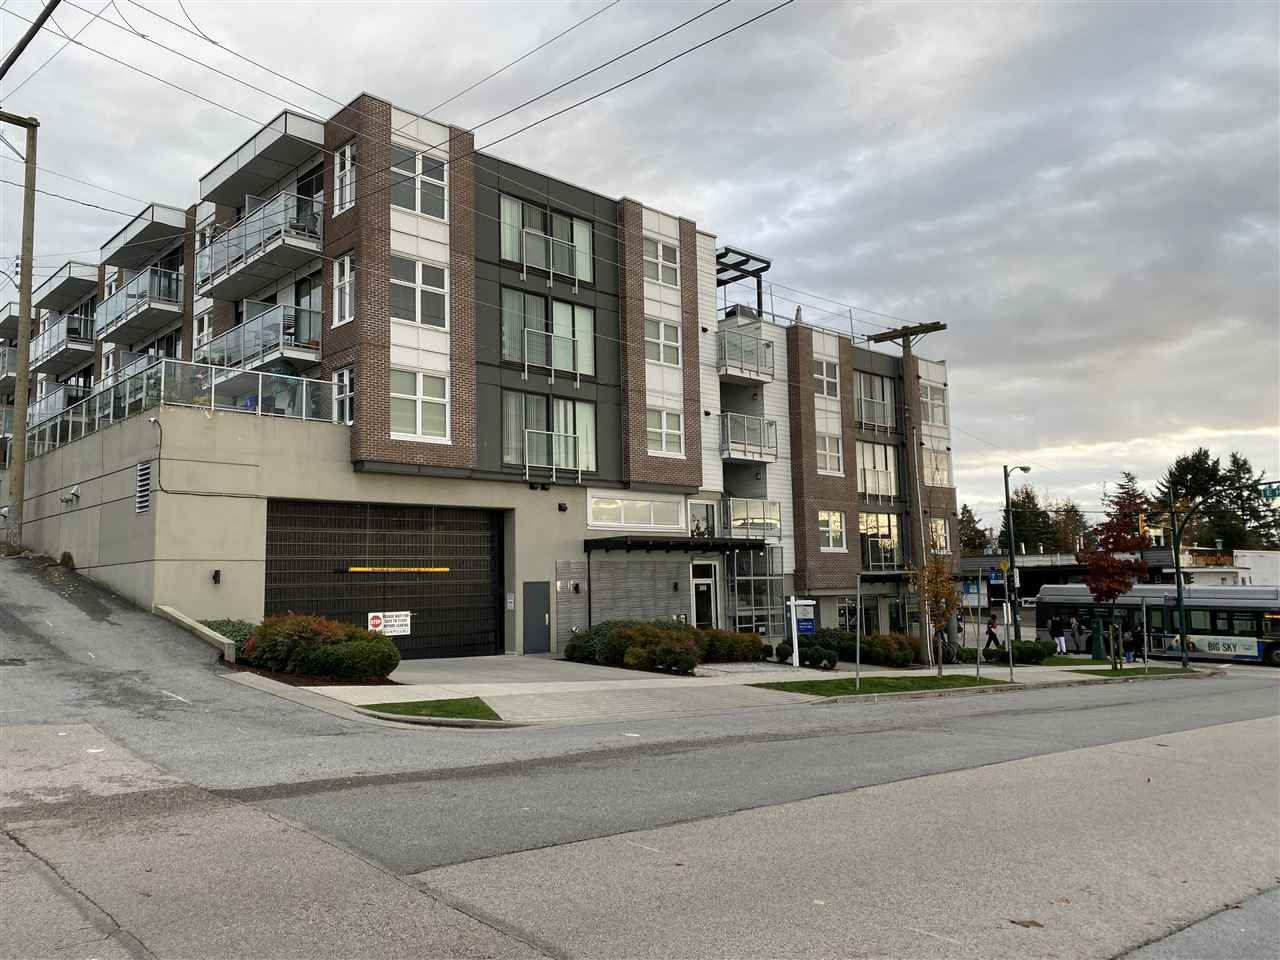 """Main Photo: 502 388 KOOTENAY Street in Vancouver: Hastings Sunrise Condo for sale in """"View 388"""" (Vancouver East)  : MLS®# R2517636"""